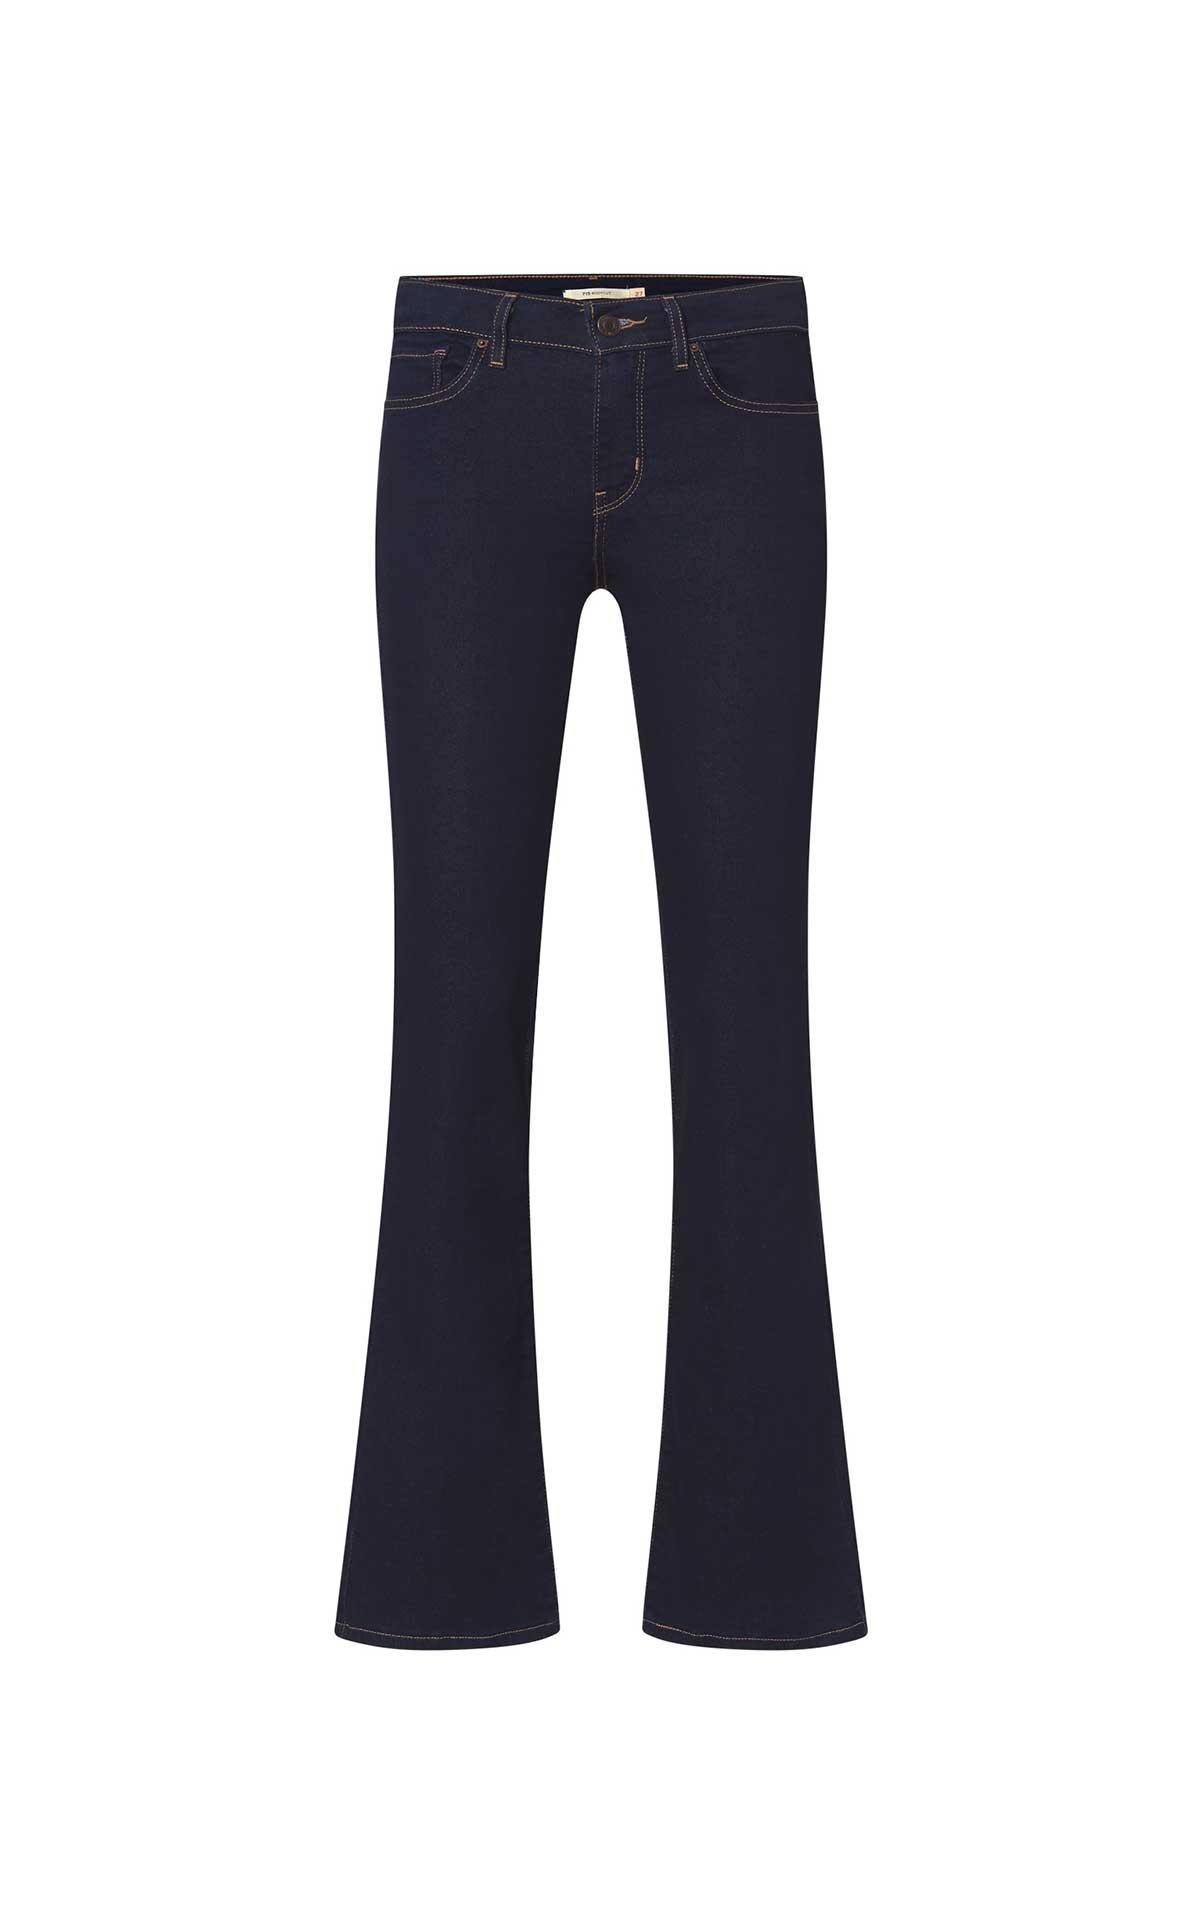 Black bell woman jeans Levi's